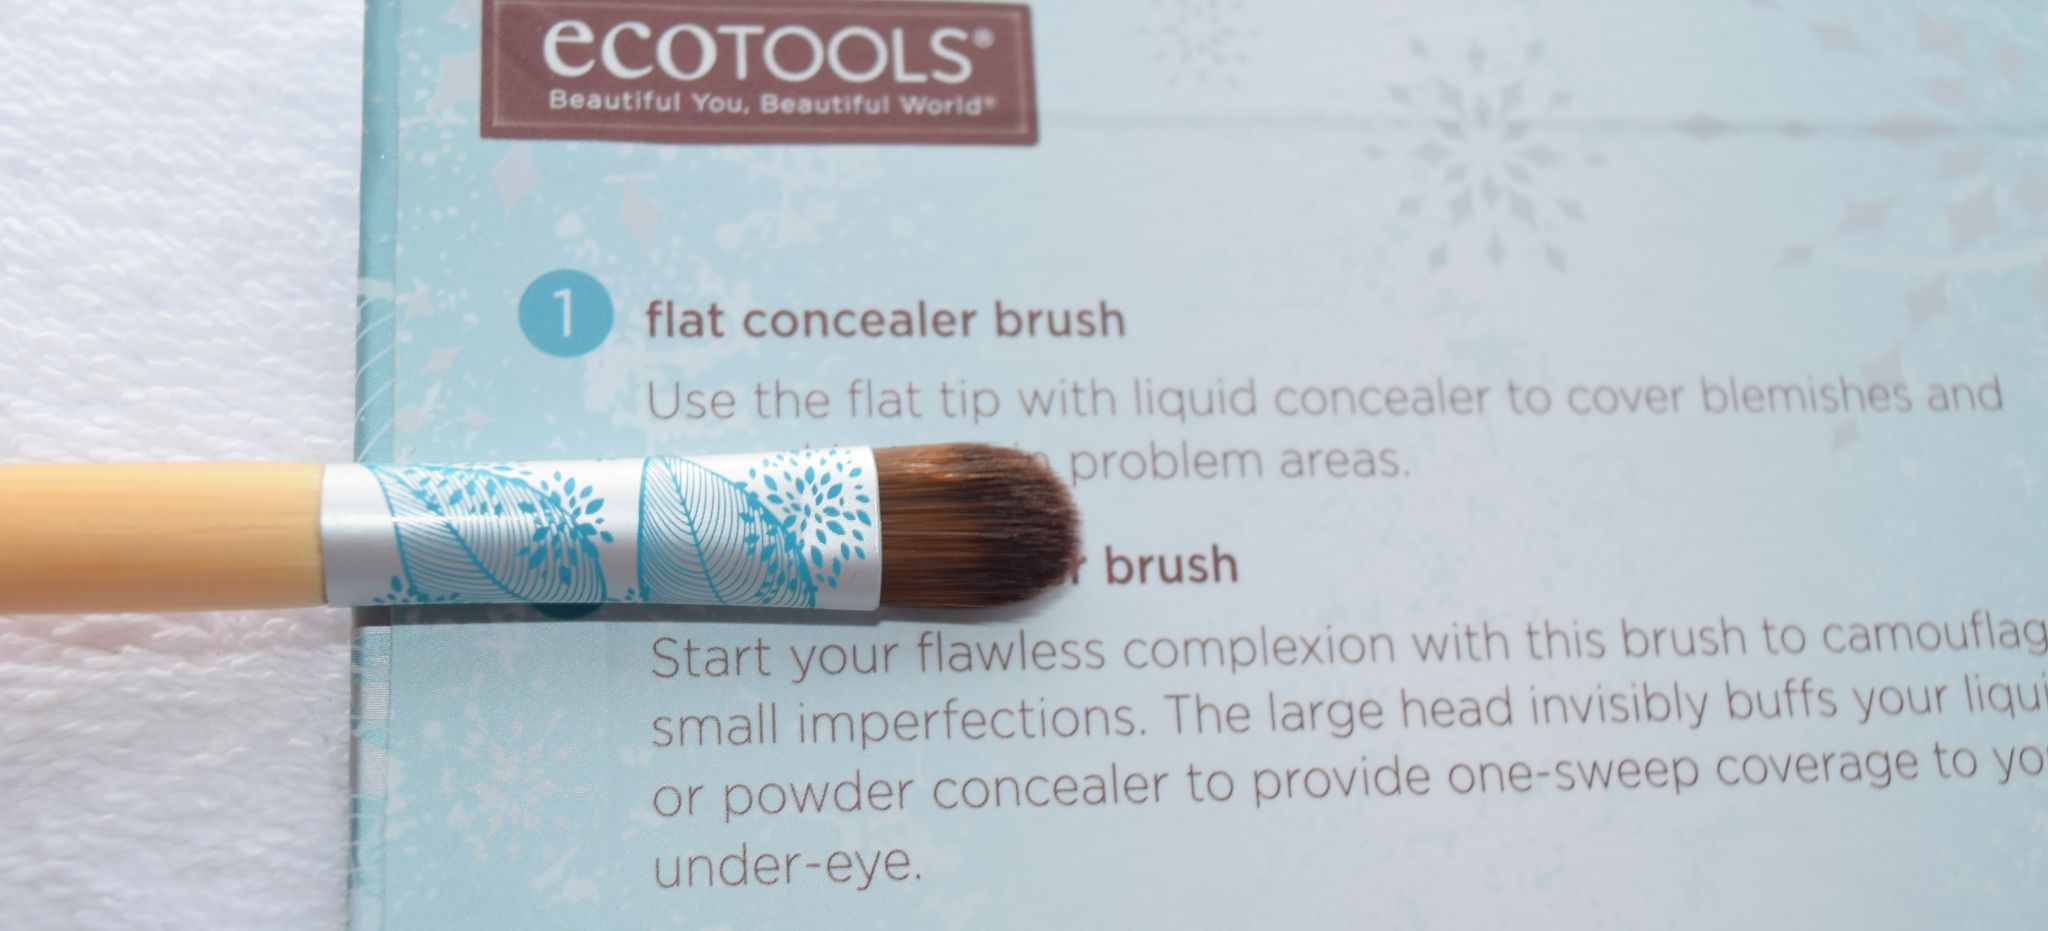 Eco Tools Festive and Flawless brushes 3